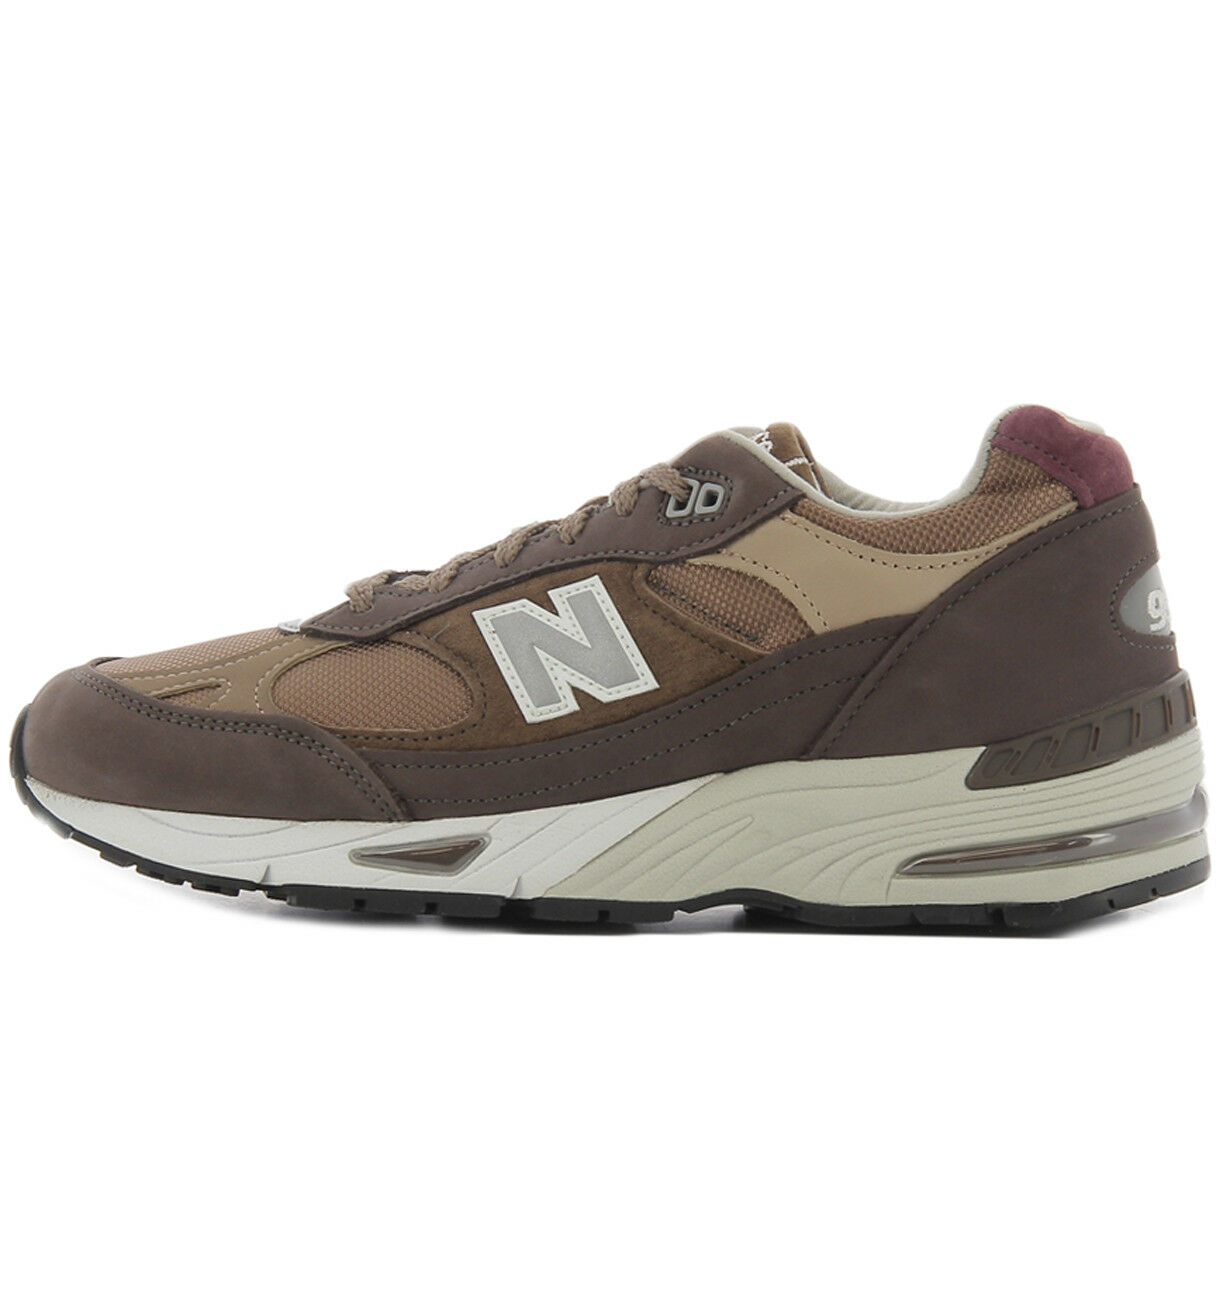 Zapatillas New Balance de color brown, modelo M991NGG fabricadas en Inglaterra